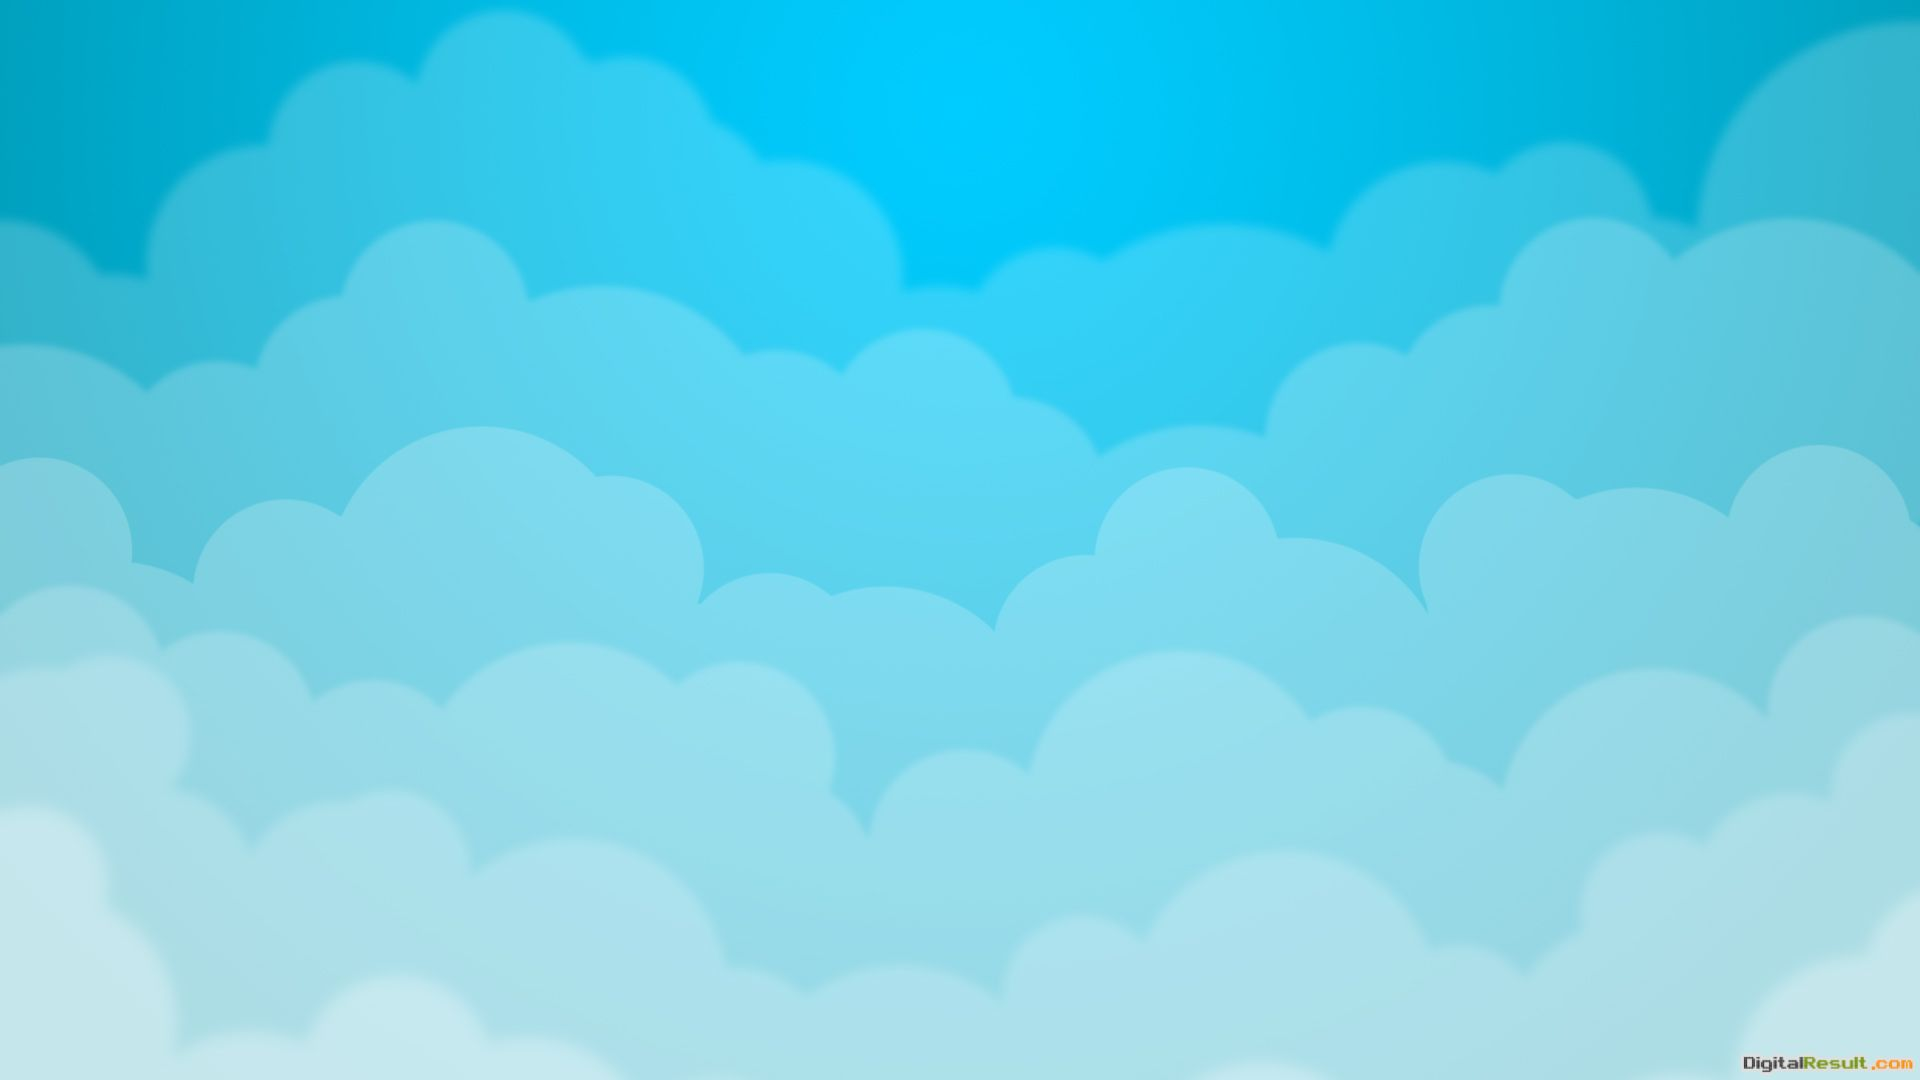 com wp content uploads 2013 12 vector wallpaper blue clouds wallpapers 833